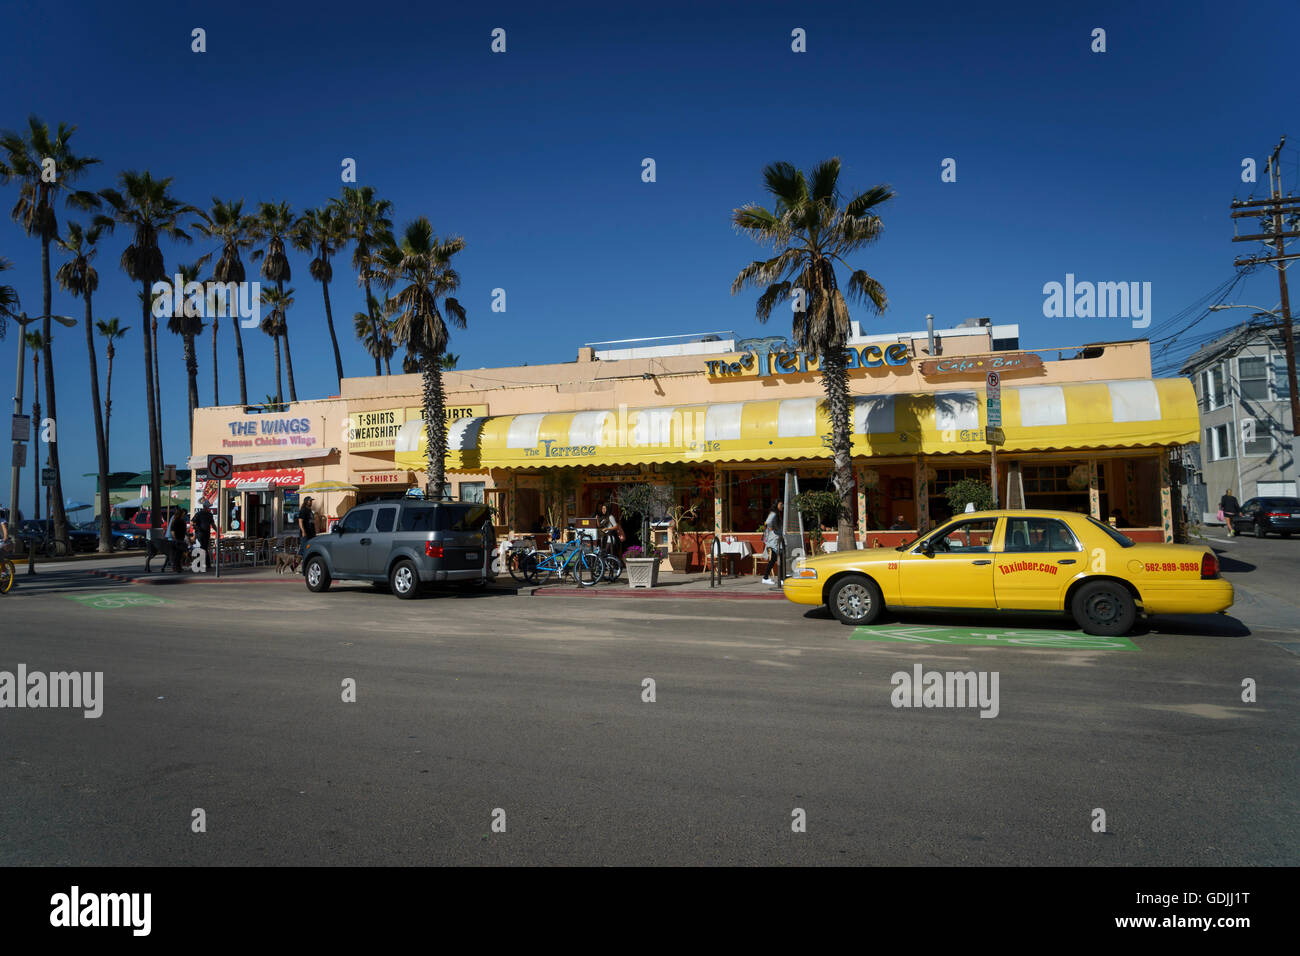 Street scene on Washington Blvd, Venice California showing a yellow cab and the Terrace cafe - Stock Image